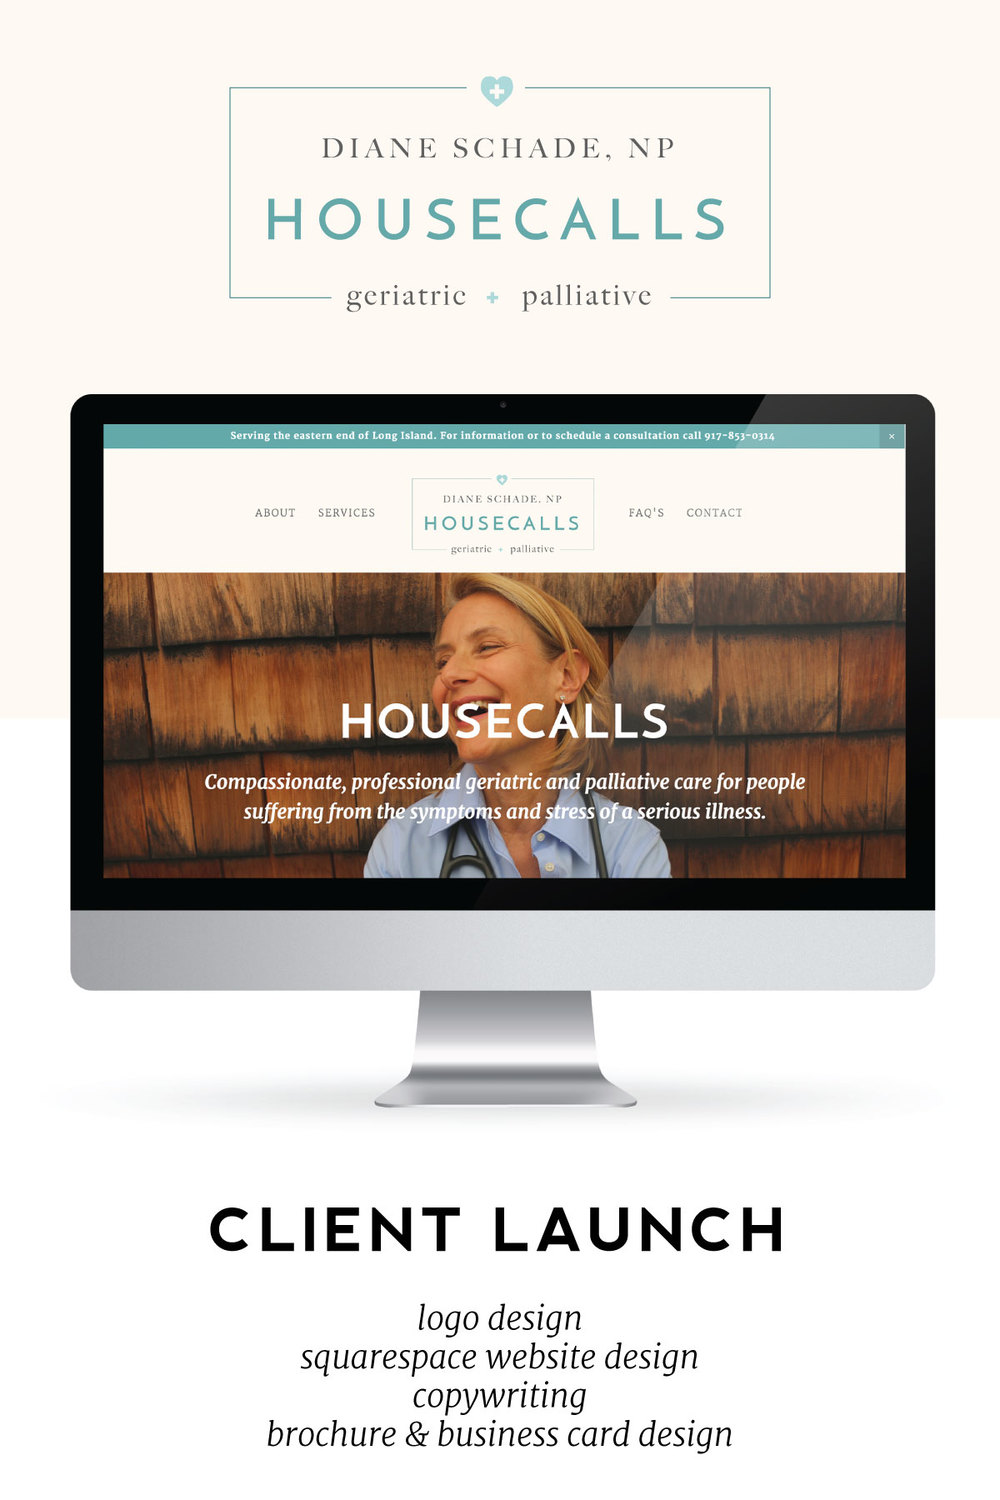 Today we're celebrating the launch of our lovely client Diane Schade and her new website, brochure, and business cards! Learn how we selected a color palette inspired by her love of the ocean and designed a logo that embodies the upscale vibe of her community (The Hamptons) yet warm and inviting for her her patients.